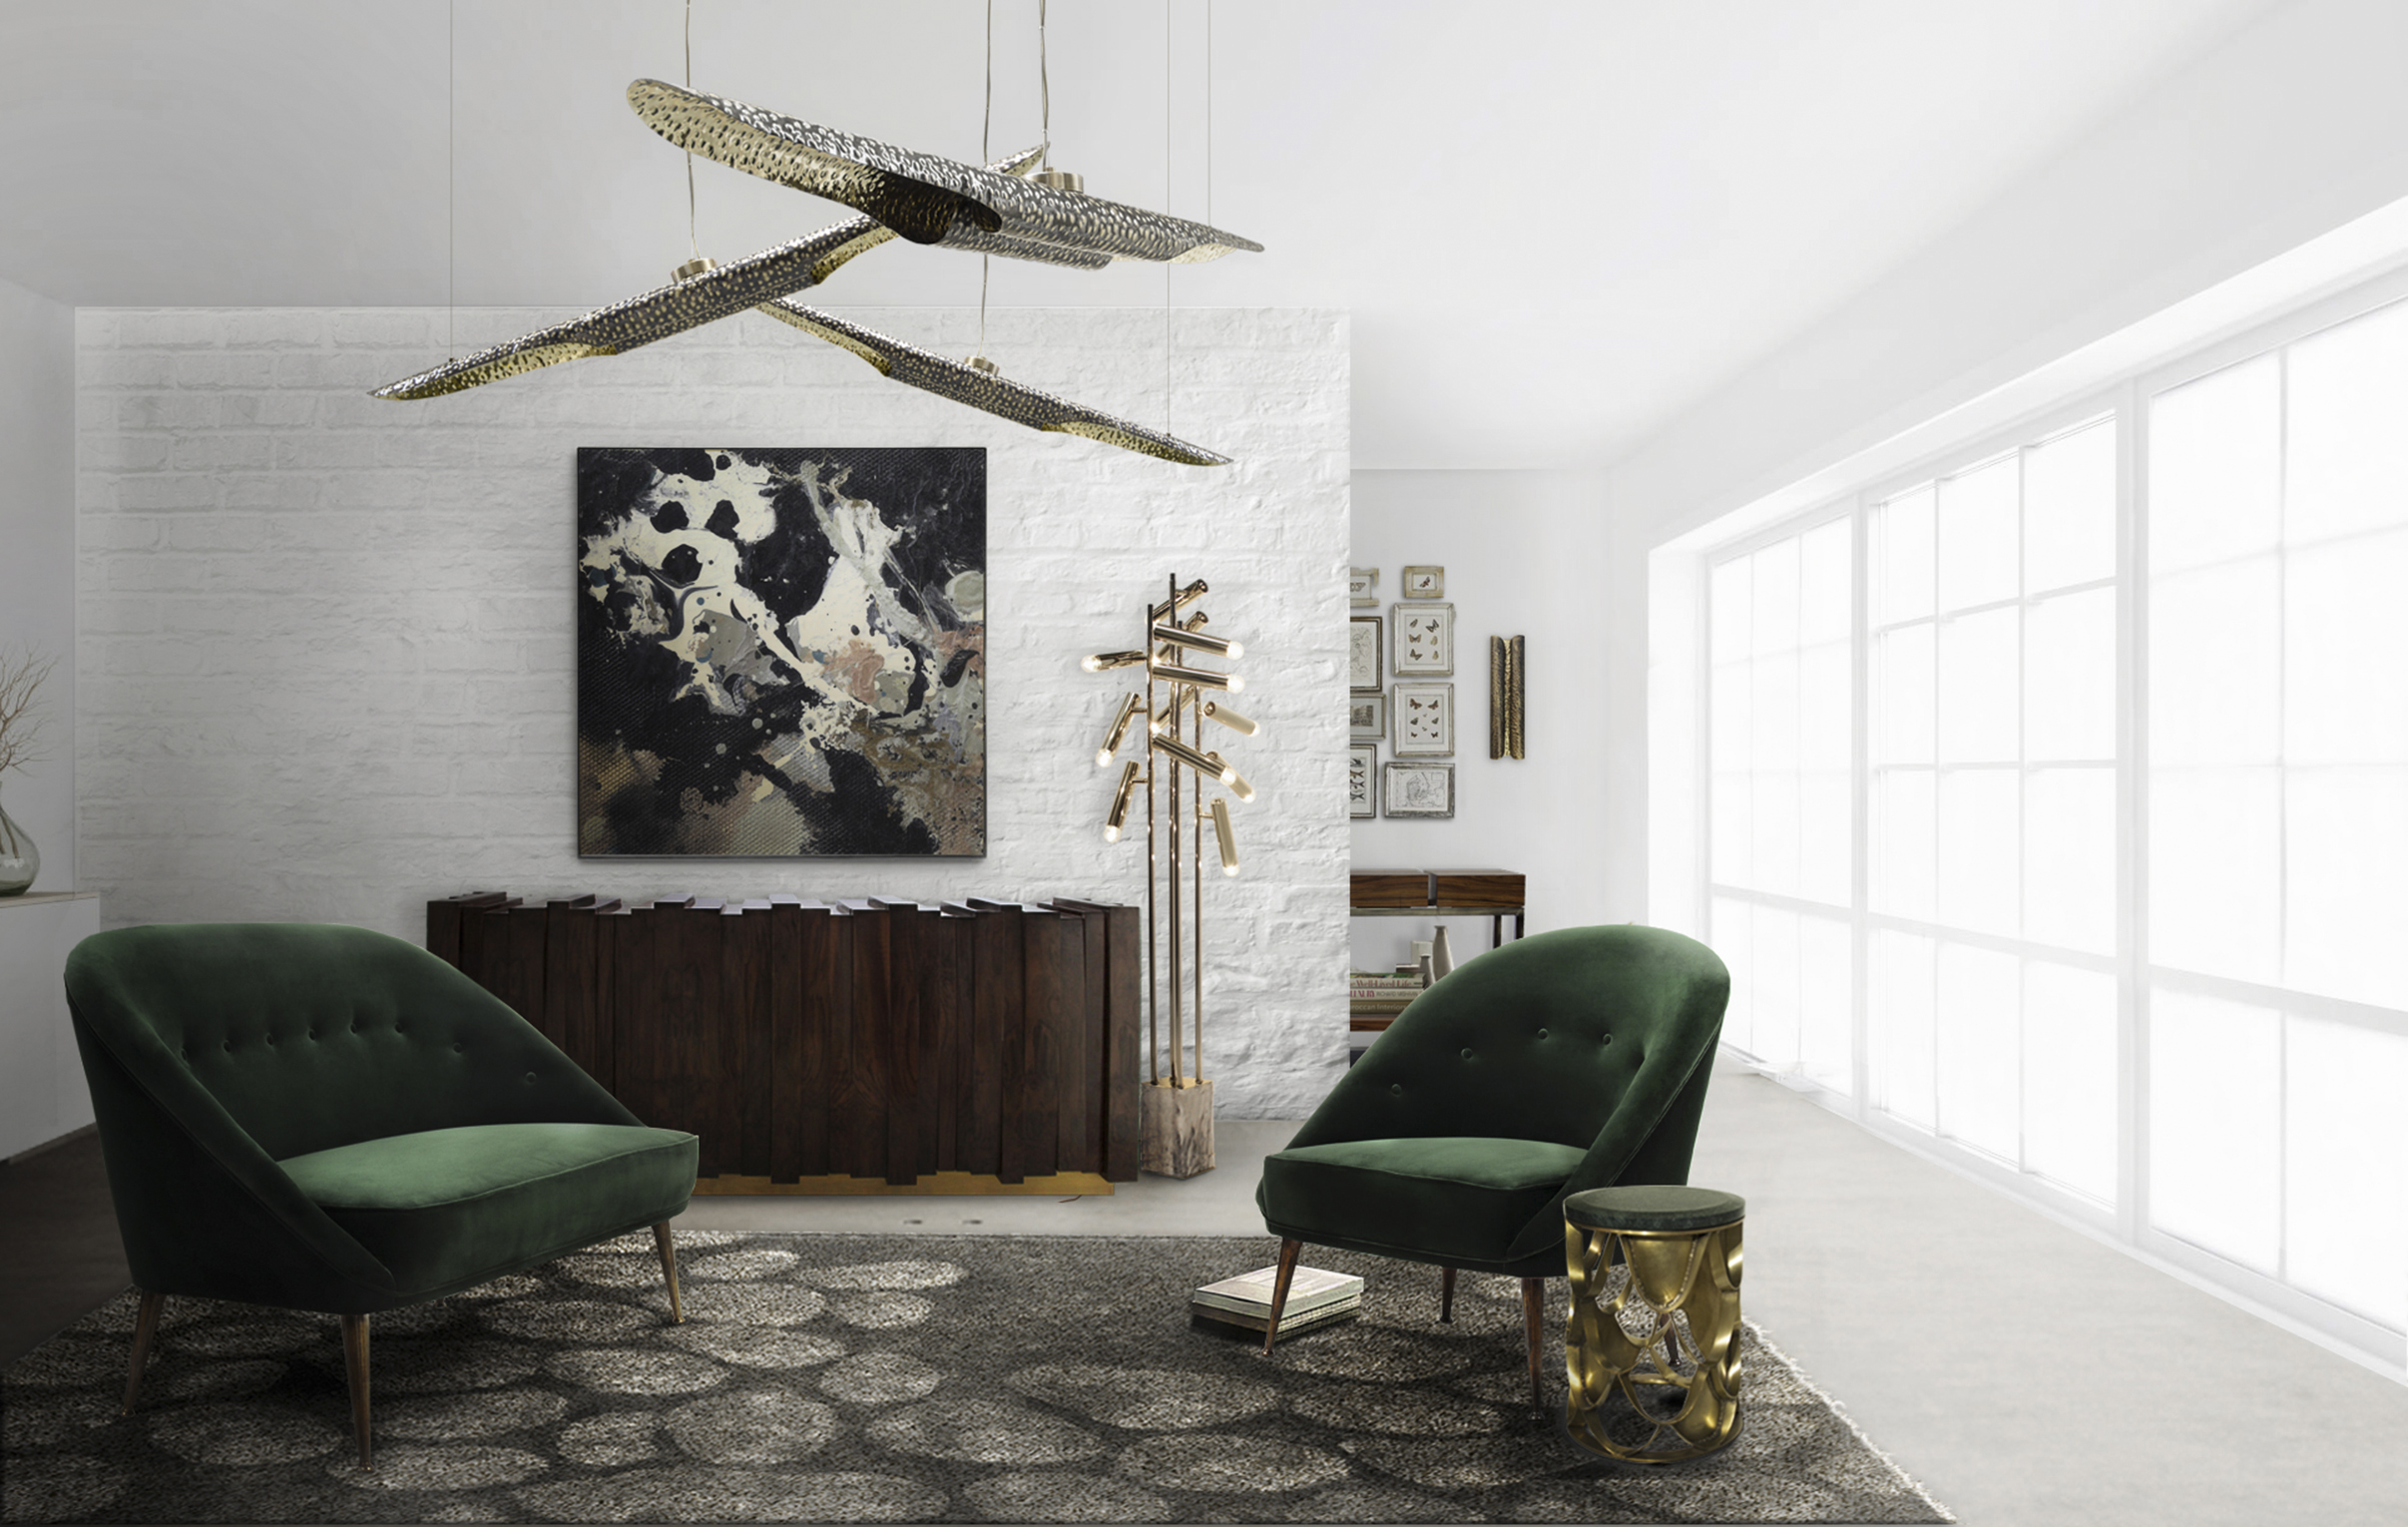 5 Modern Chairs That You Cant Miss at Maison et Objet 18 maison et objet 5 Modern Chairs That You Cant Miss at Maison et Objet 18 5 Modern Chairs That You Cant Miss at Maison Objet 18 5